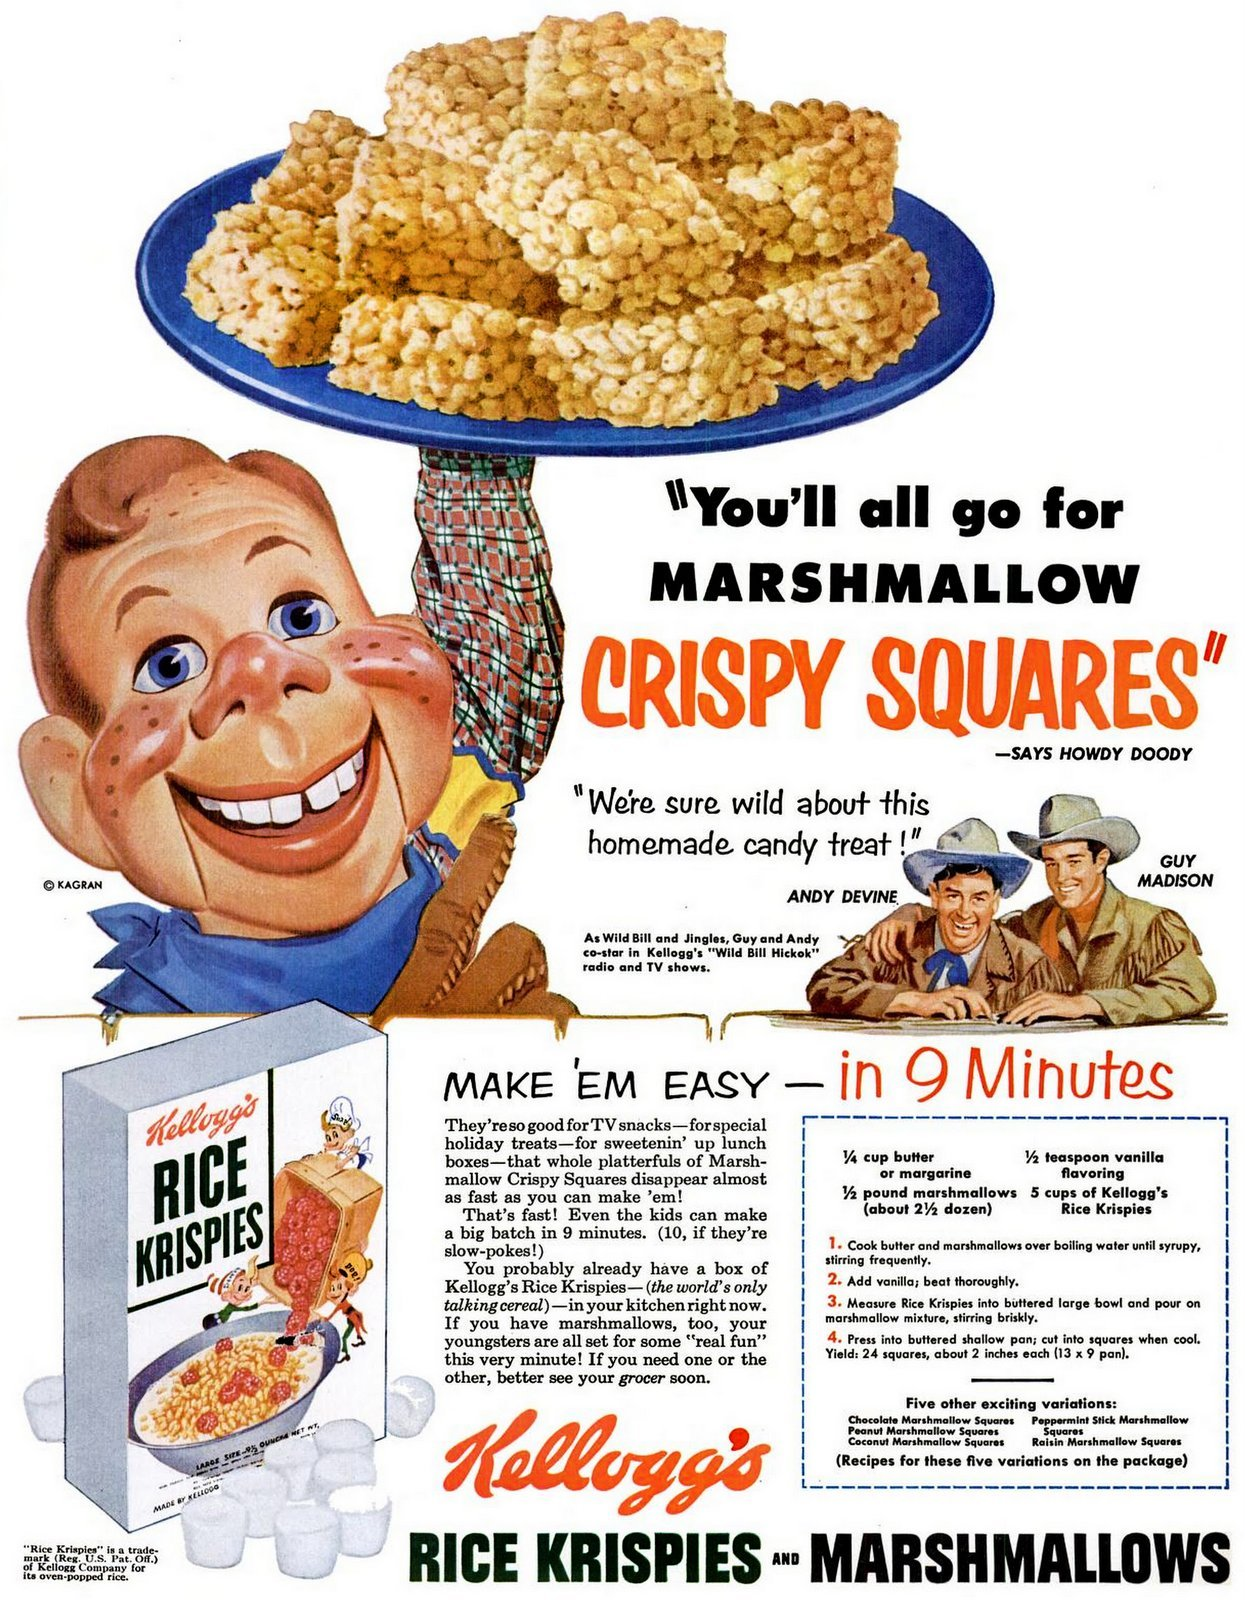 Howdy Doody: You'll all go for marshmallow crispy squares (1953)